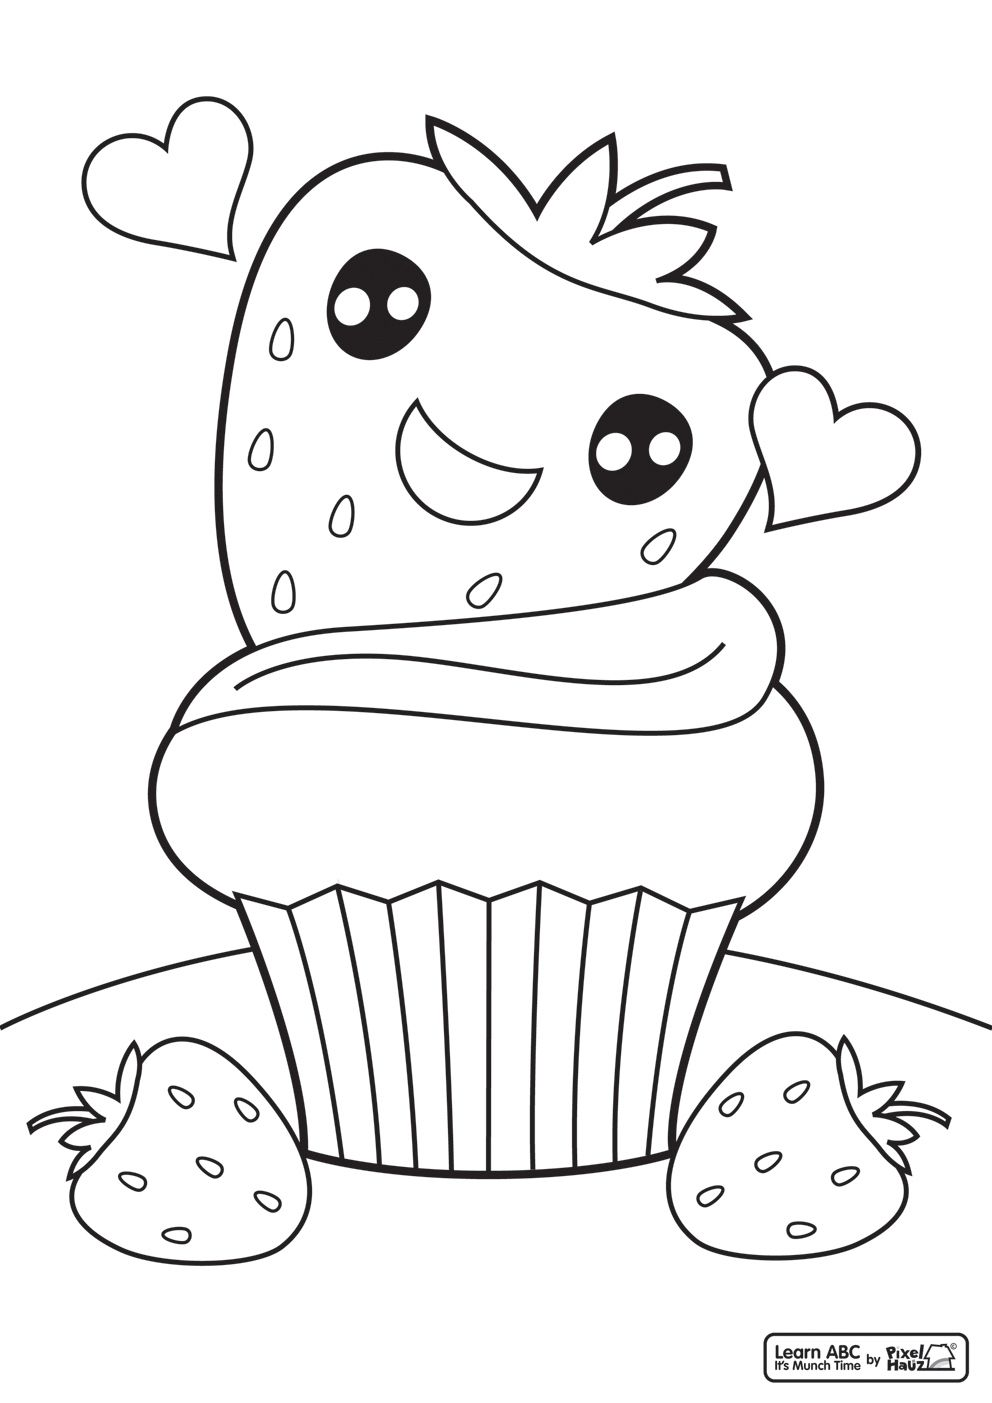 Colouring Pages For Cupcakes : Cute Cupcake Coloring Pages - Coloring Home